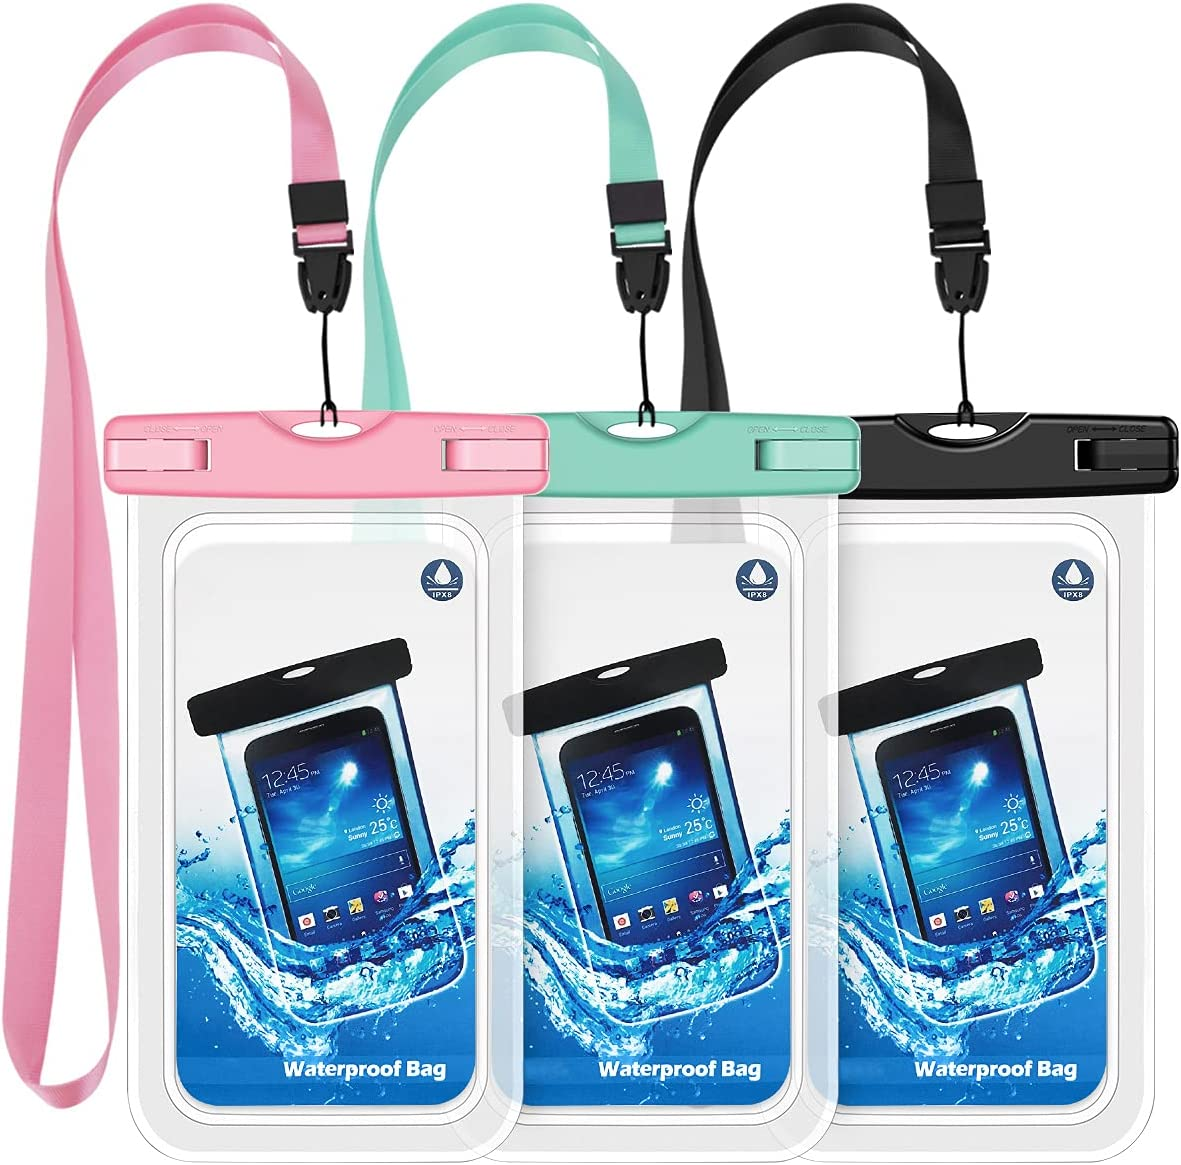 Universal Waterproof Case Cellphone Pouch,3 Pack Waterproof Pouch Underwater Dry Bag with Lanyard Compatible iPhone 12 Pro/11 Pro Max/Xs Max/XS/XR/X/8, Galaxy S20/S10/S9/Note 10, Google HTC up to 6.8